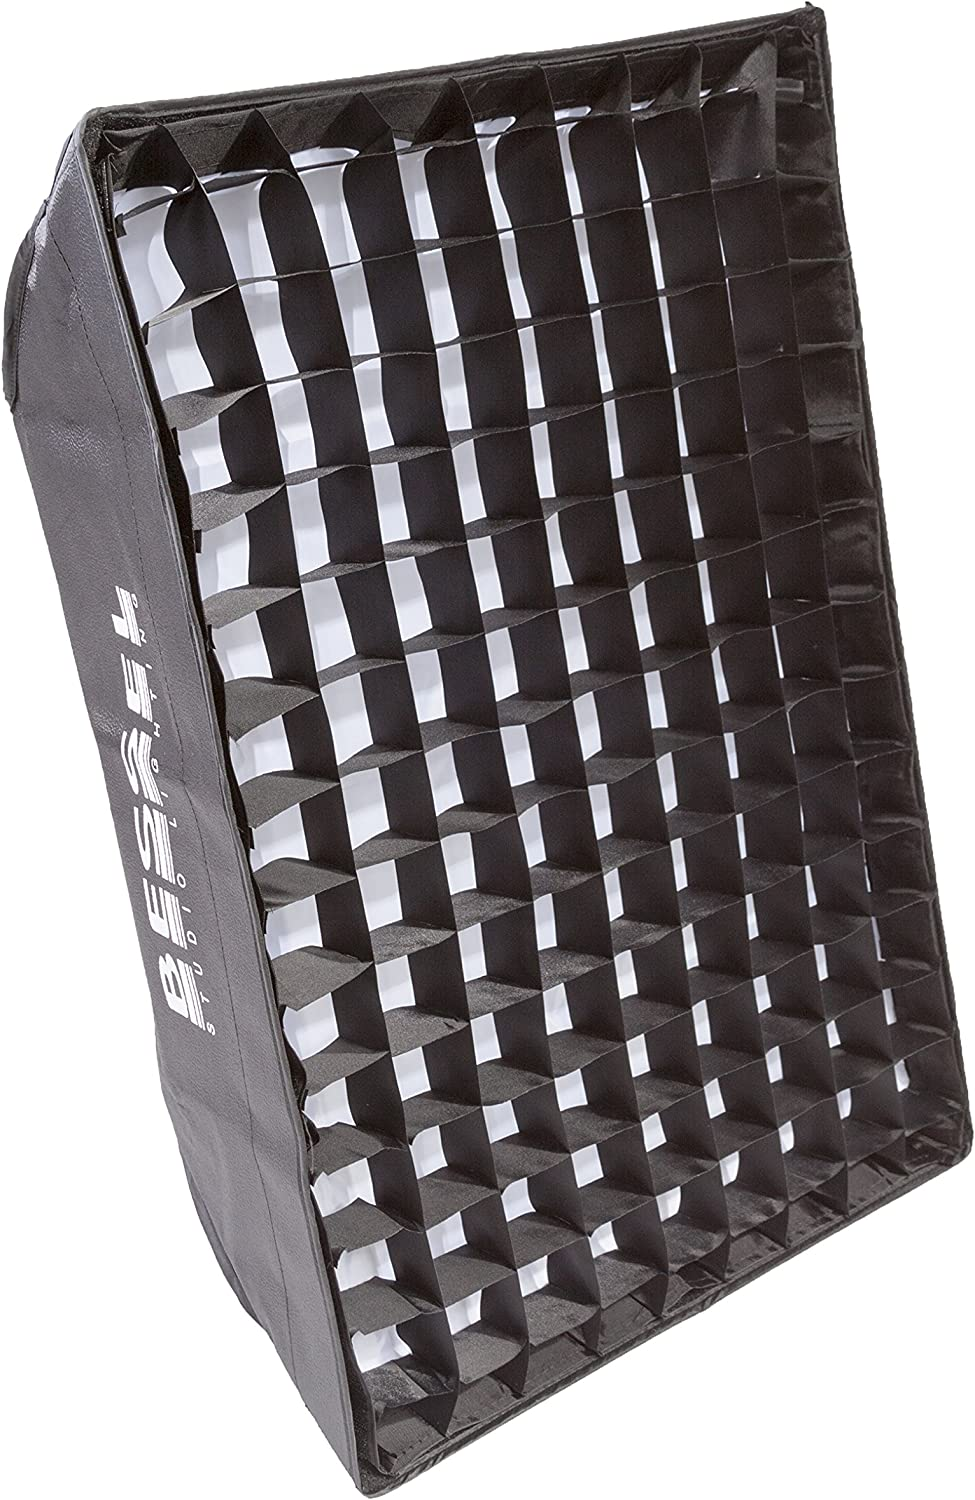 Bessel 90 x 22 cm Strip Softbox with Double Diffusers and 4 cm Honeycomb Grid for EL//Elinchrom Fit Lamps Silver